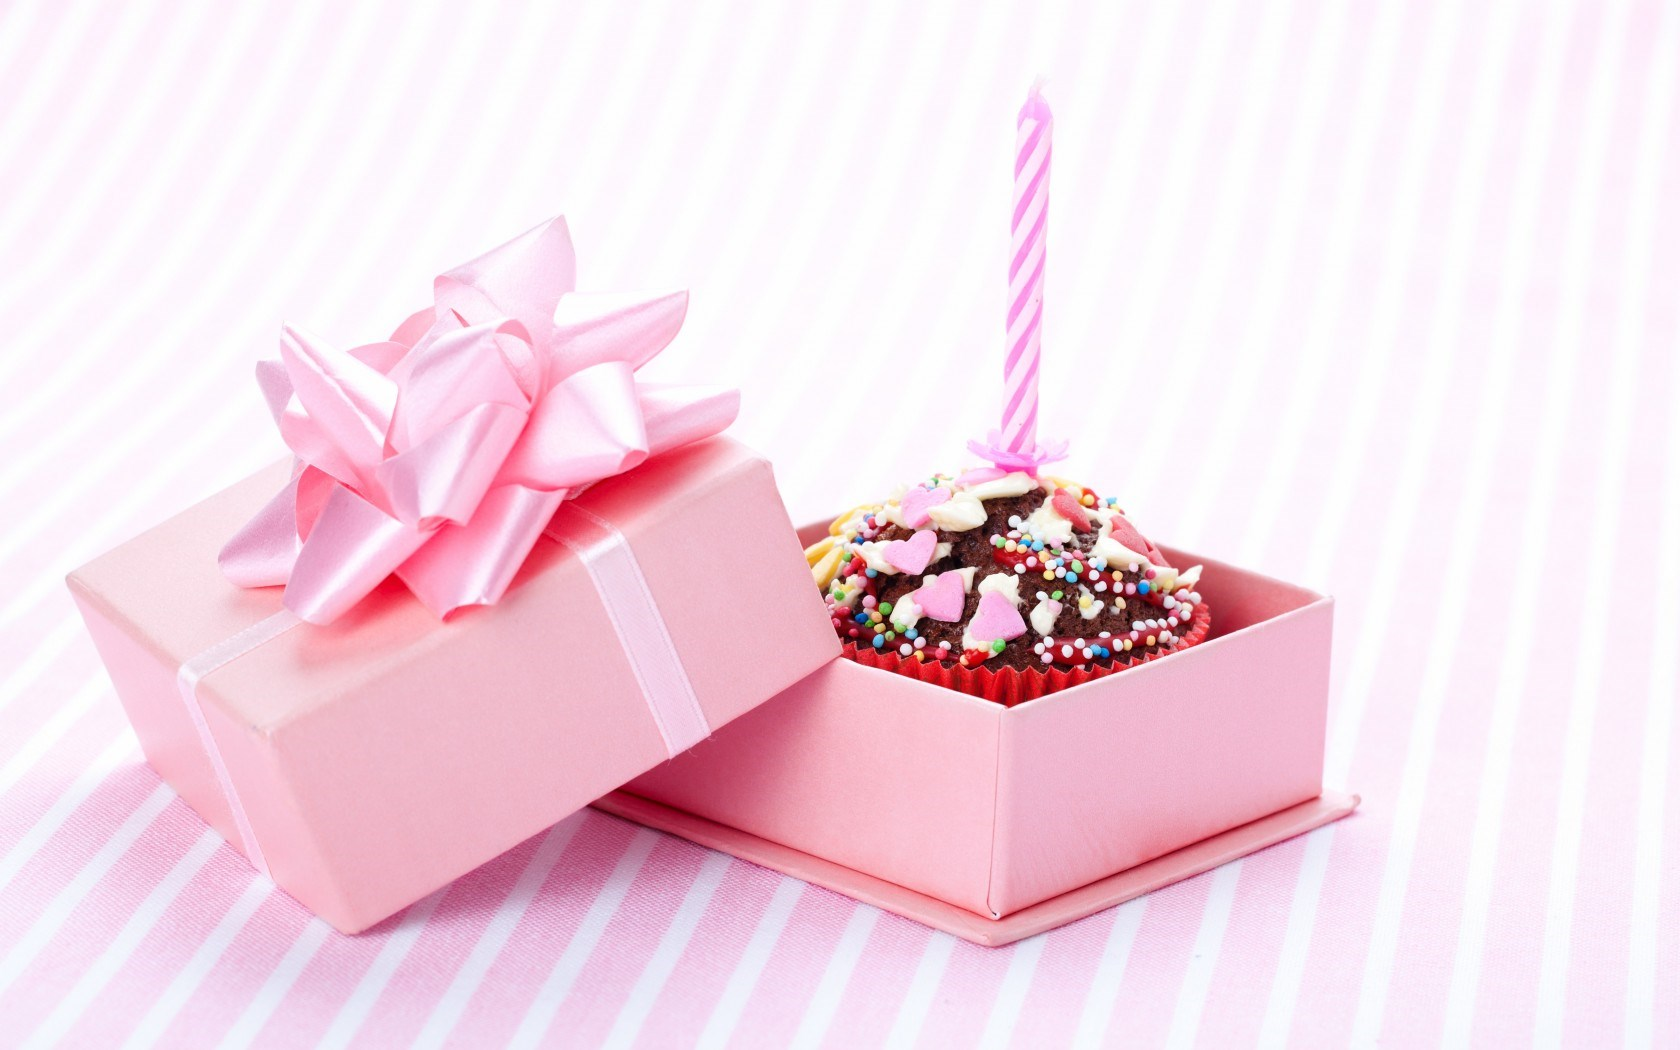 Cake Birthday Candle Box Gift wallpaper 1680x1050 #23946